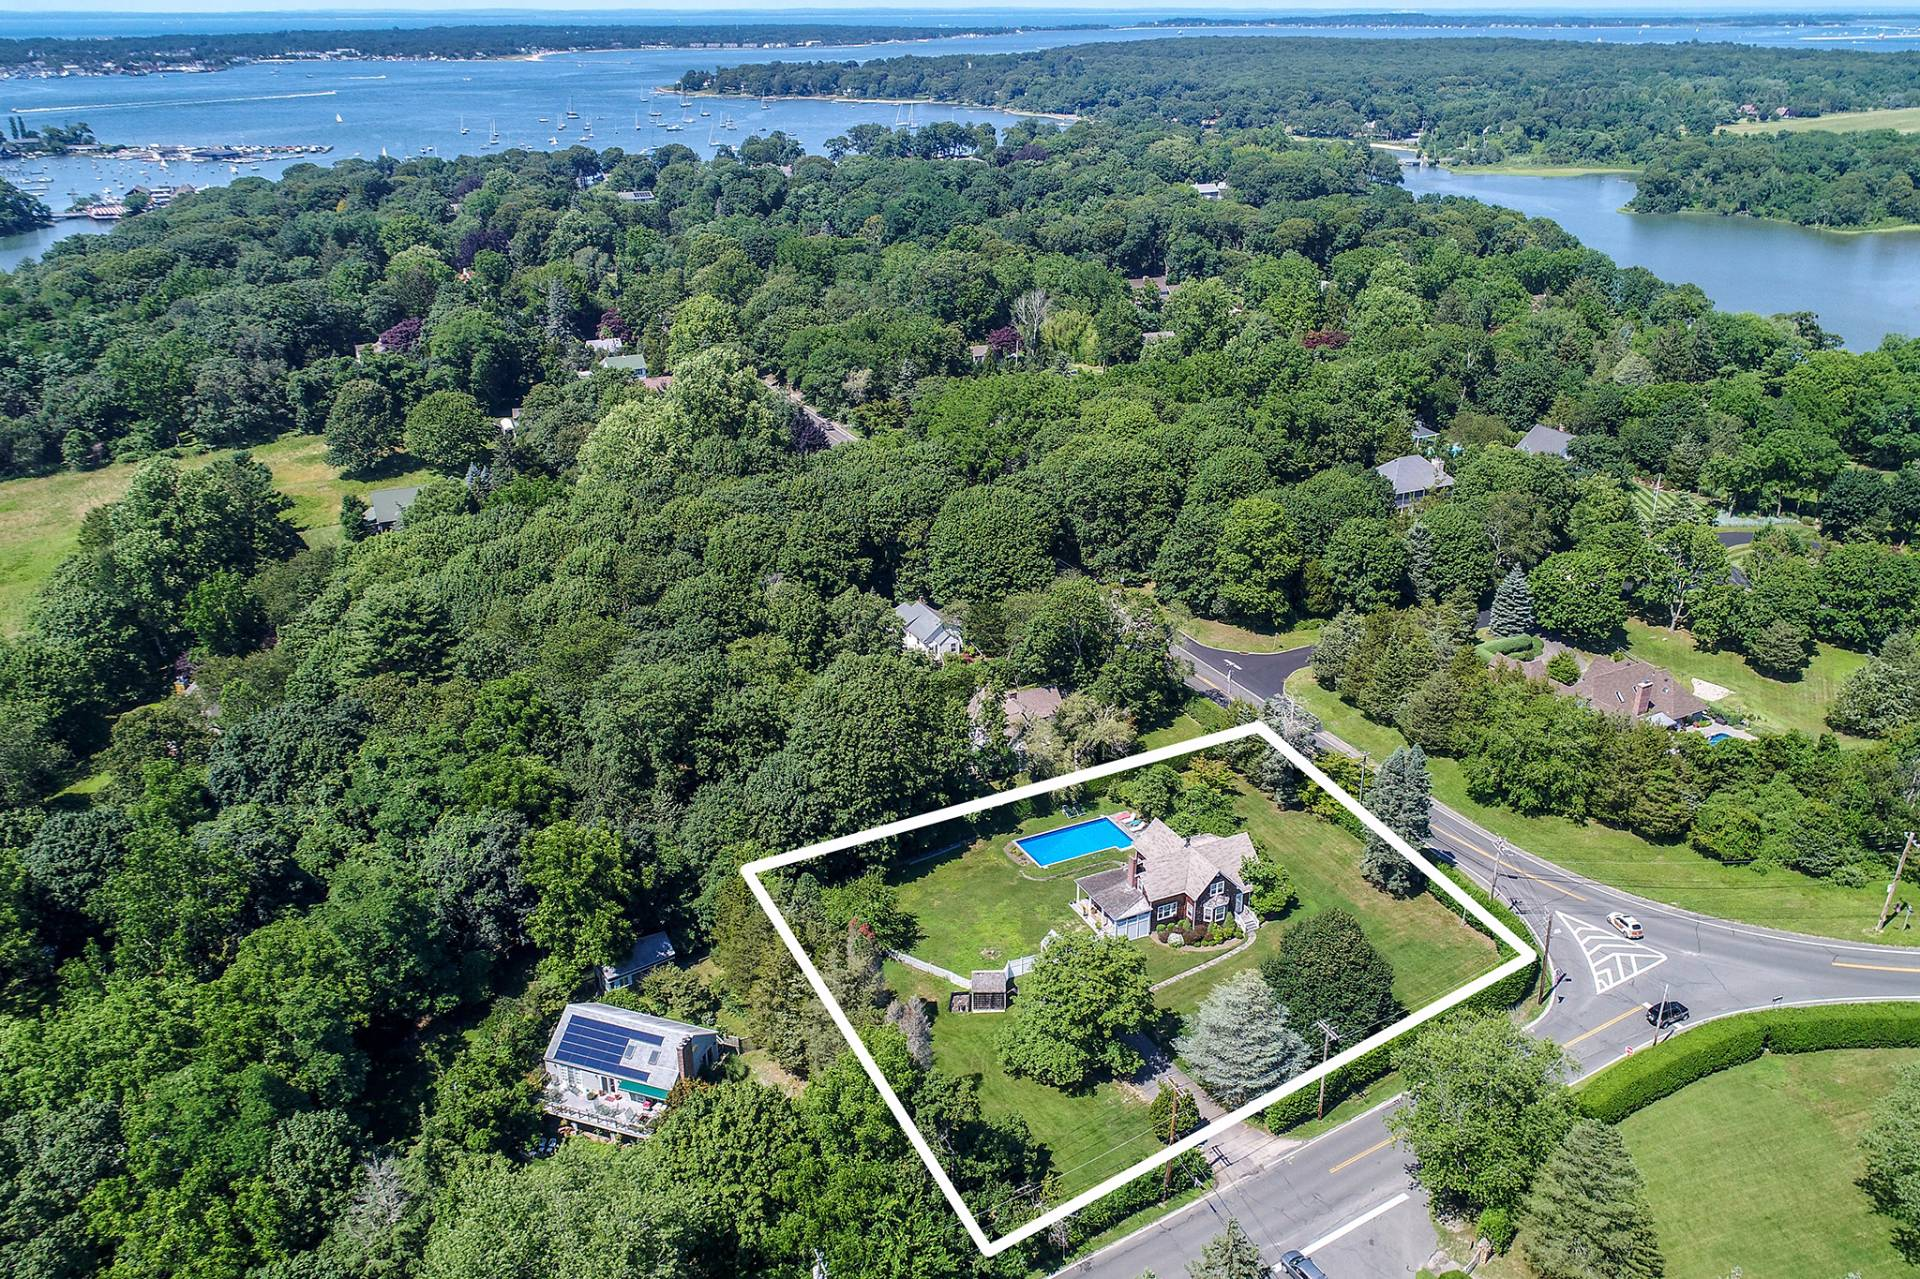 Single Family Home for Sale at Shelter Island Farmhouse With Pool 2 West Neck Road, Shelter Island, New York